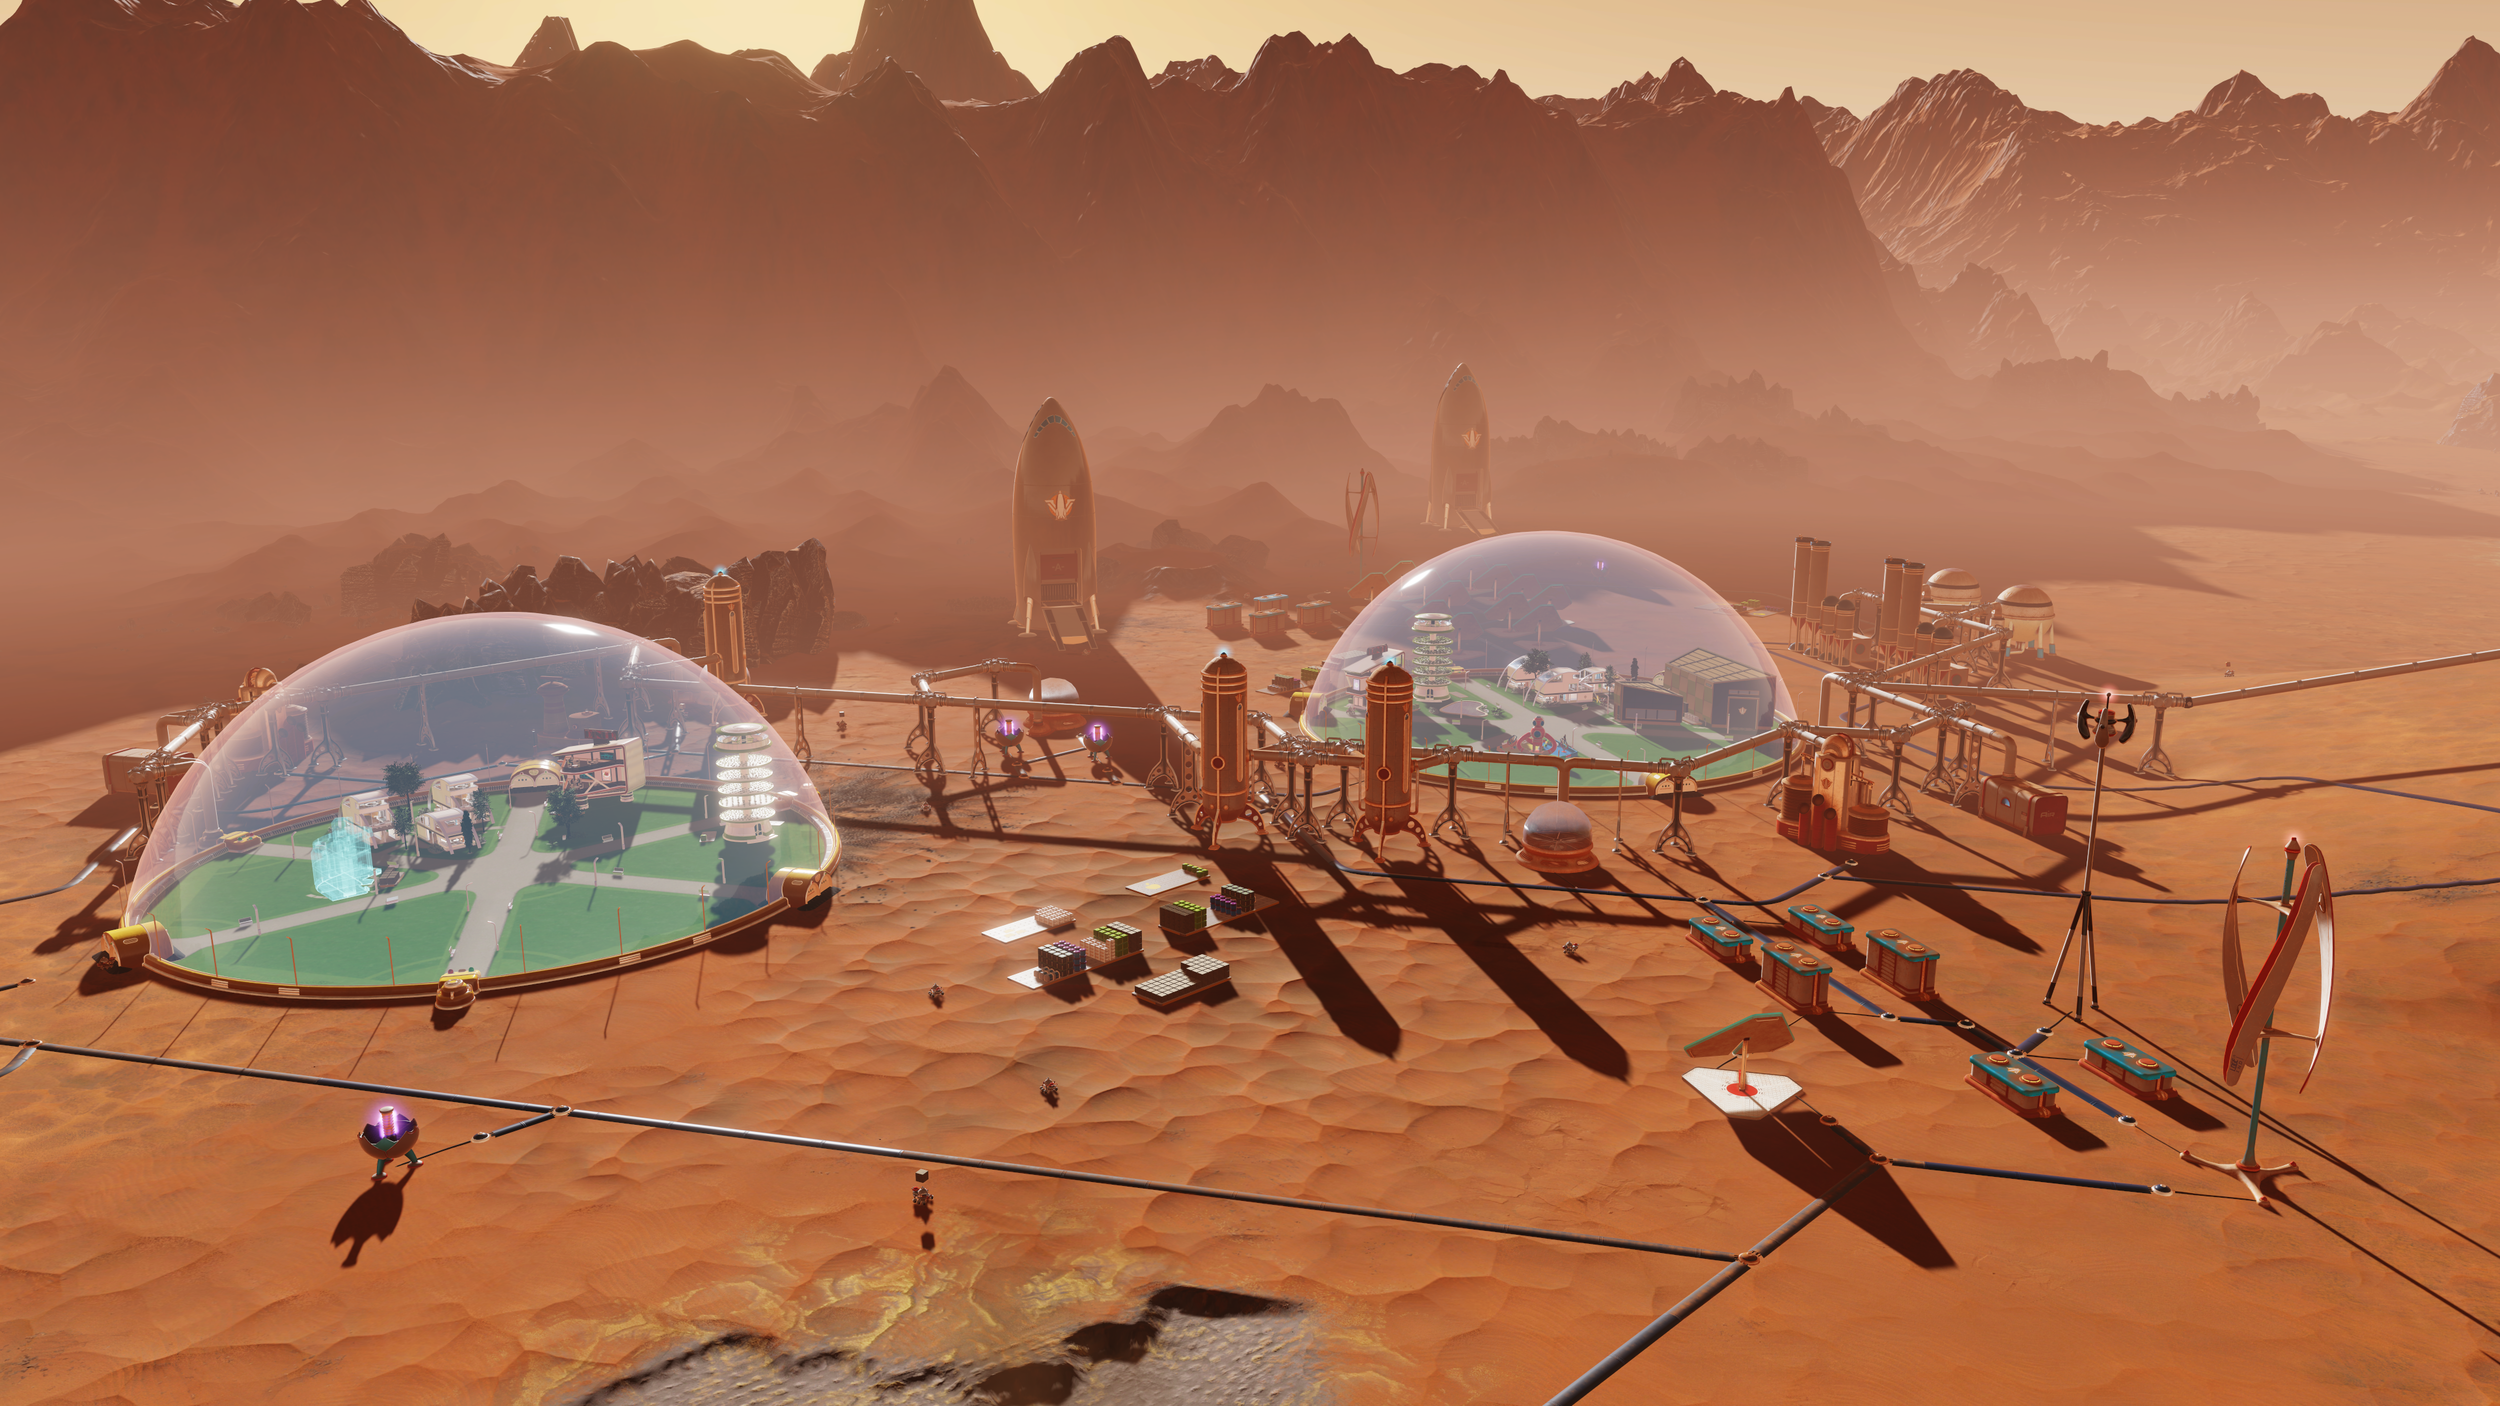 An impression of Mars colonization - Image Credit:  Sci-Gaming/Surviving Mars